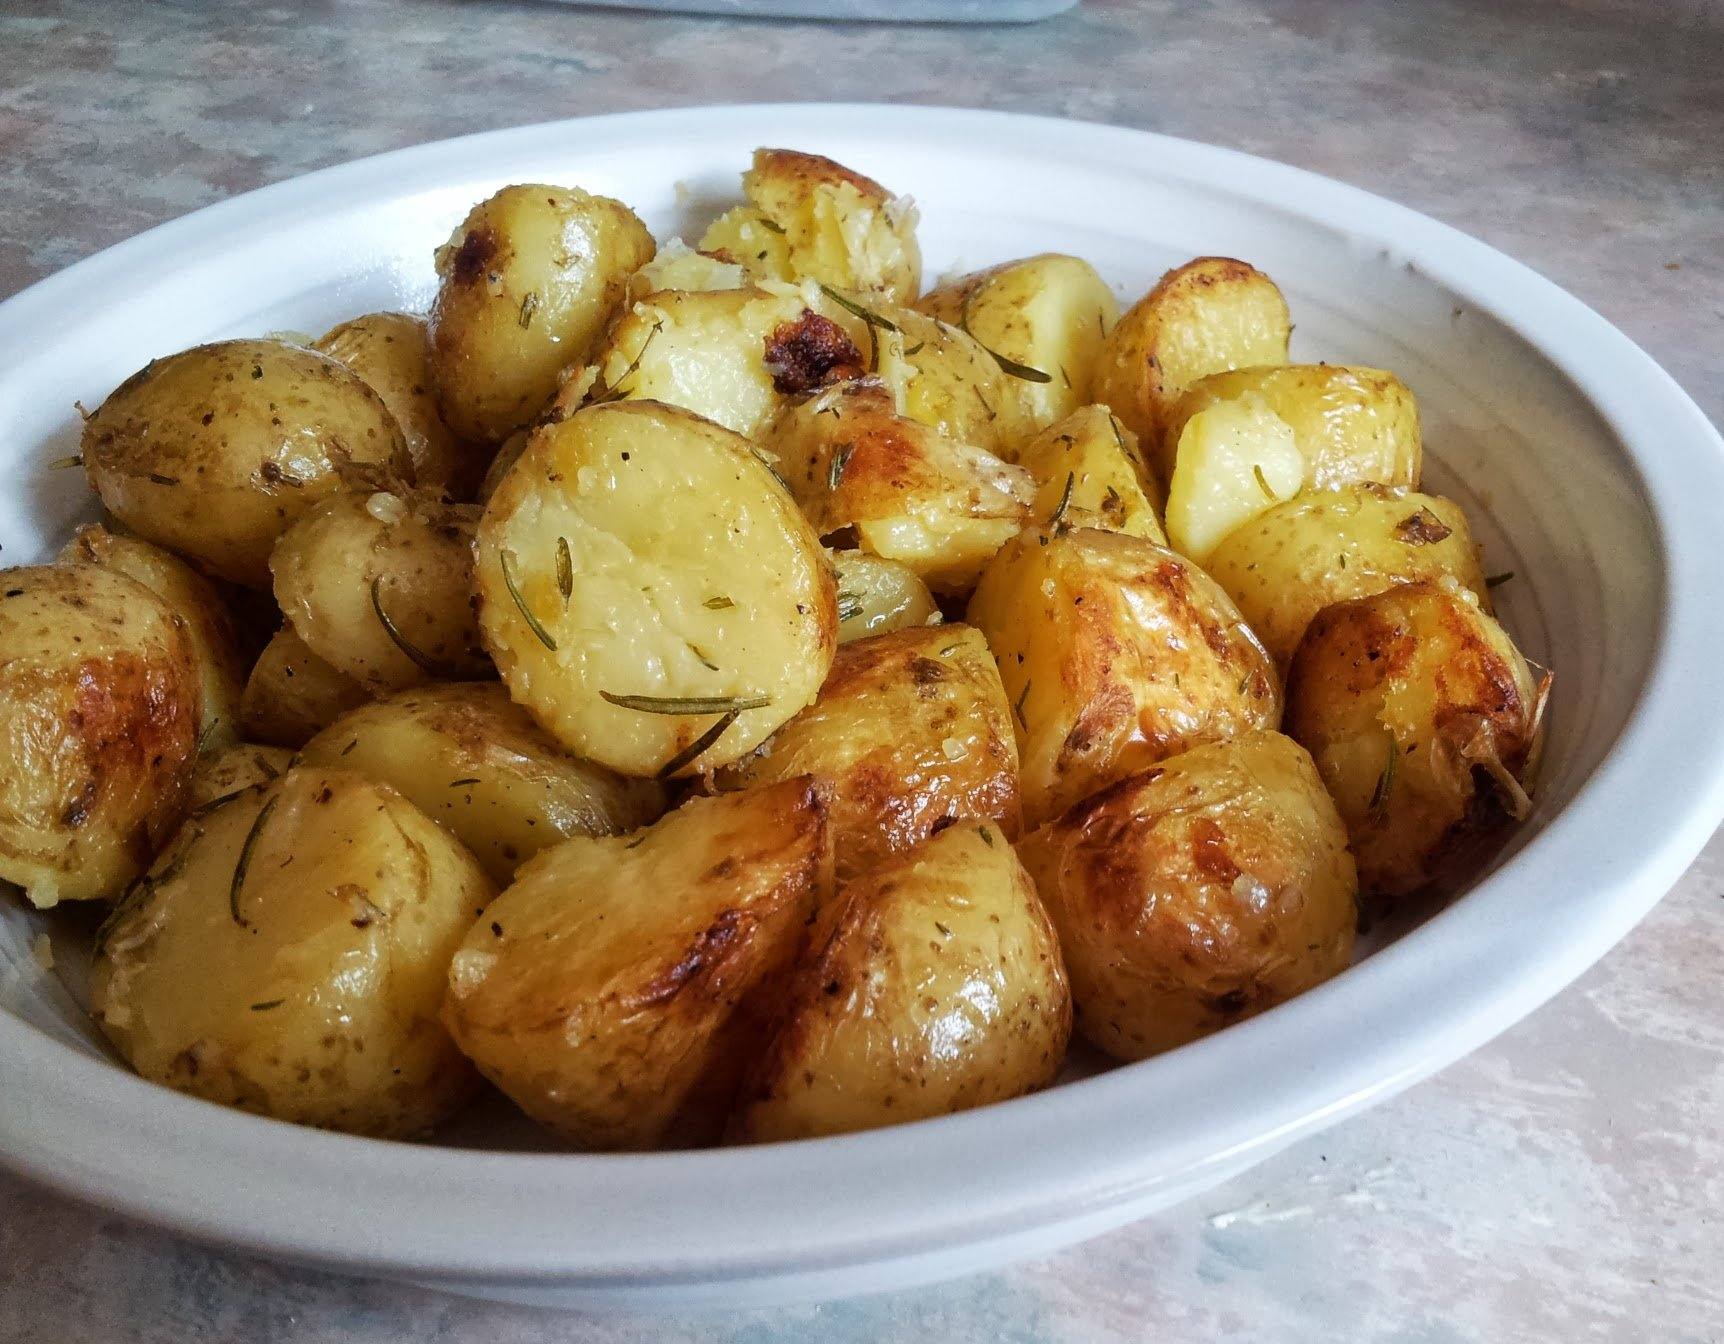 roasted new potatoes with rosemary and thyme